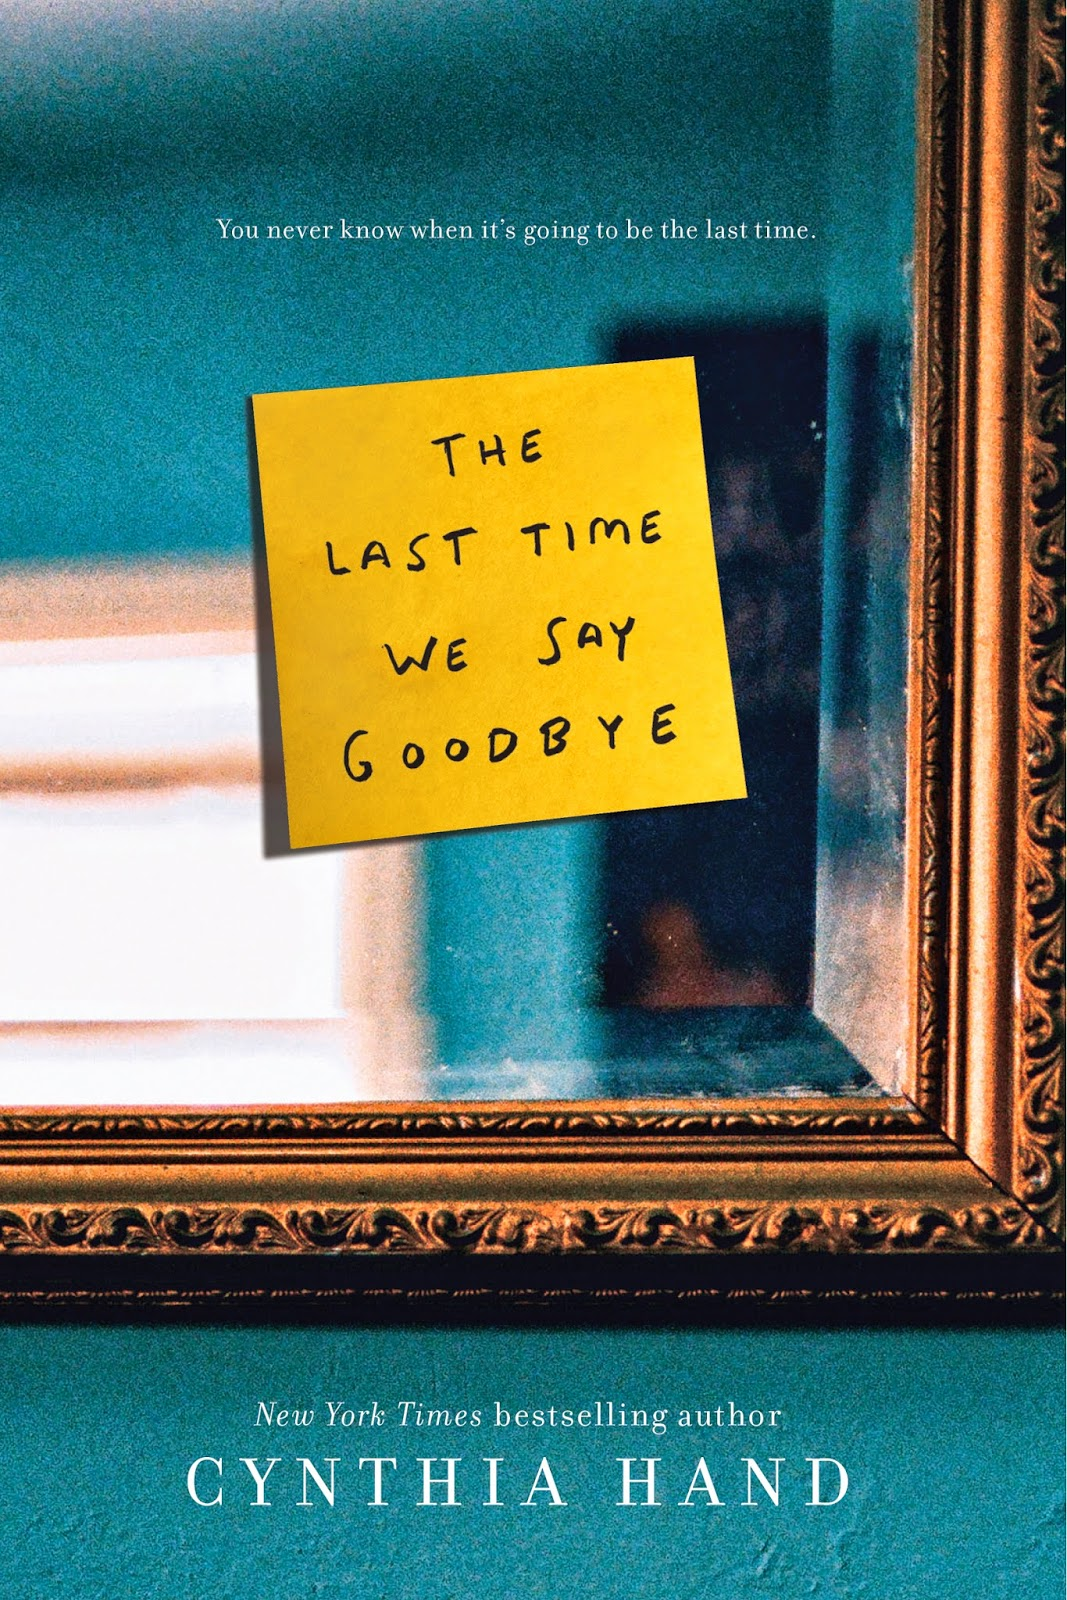 About The Last Time We Say Goodbye